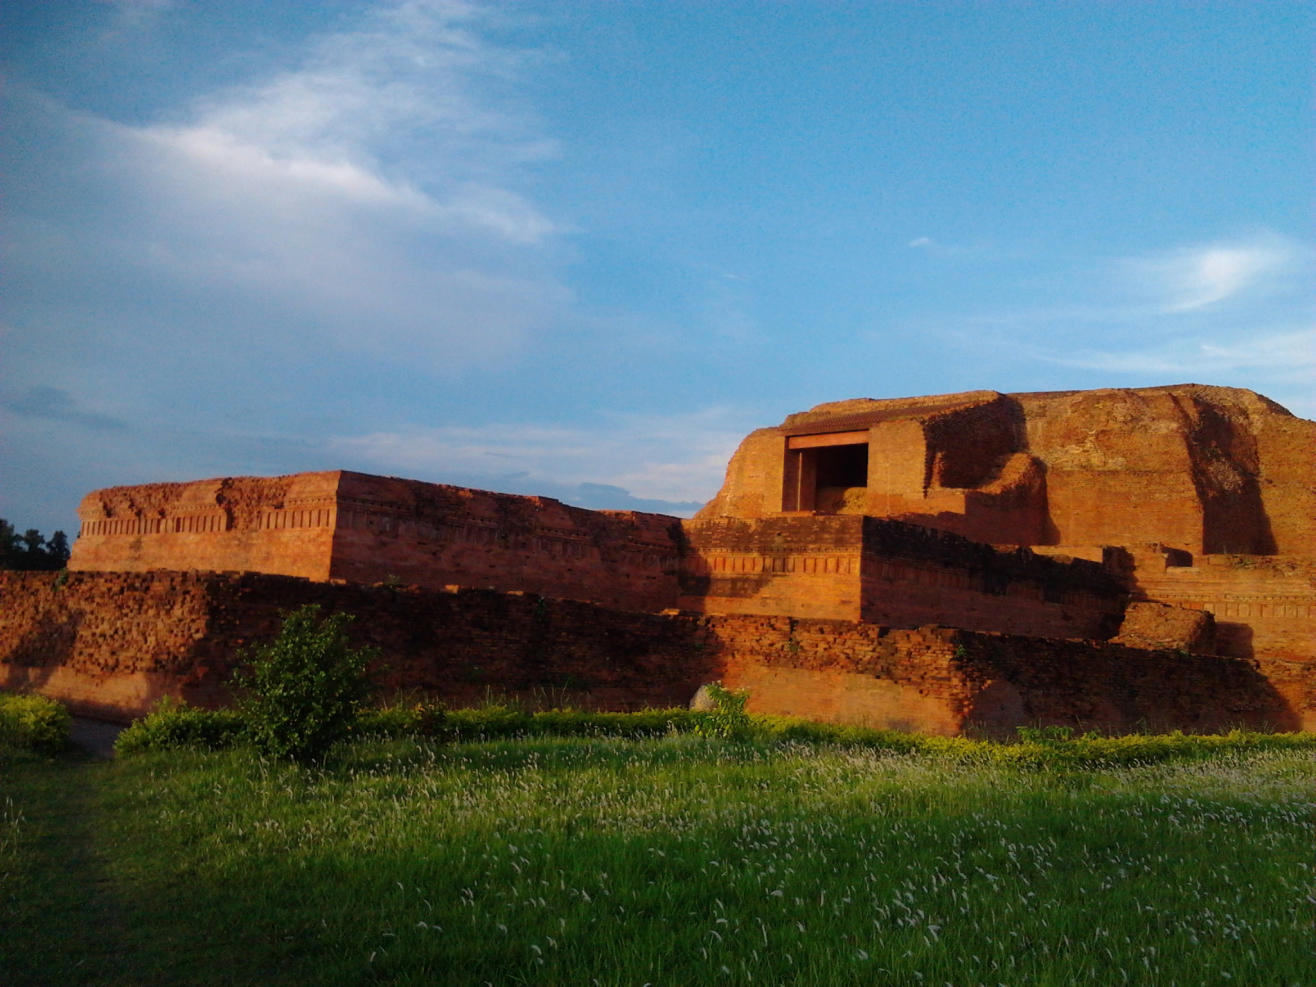 Ancient Site of Vikramshila, Bikram Shila